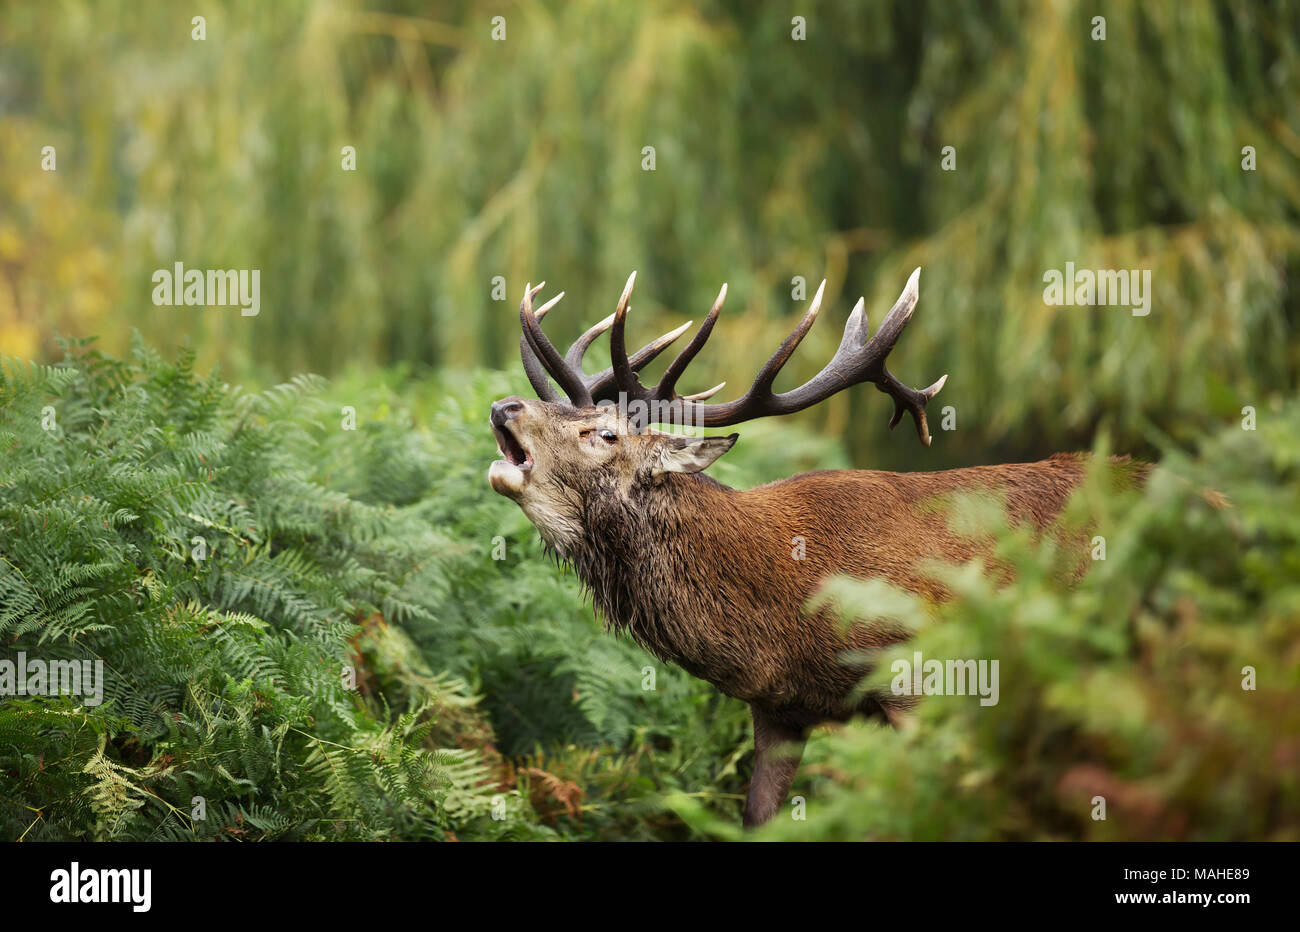 Close-up of a Red deer roaring during the rut in autumn, UK. - Stock Image